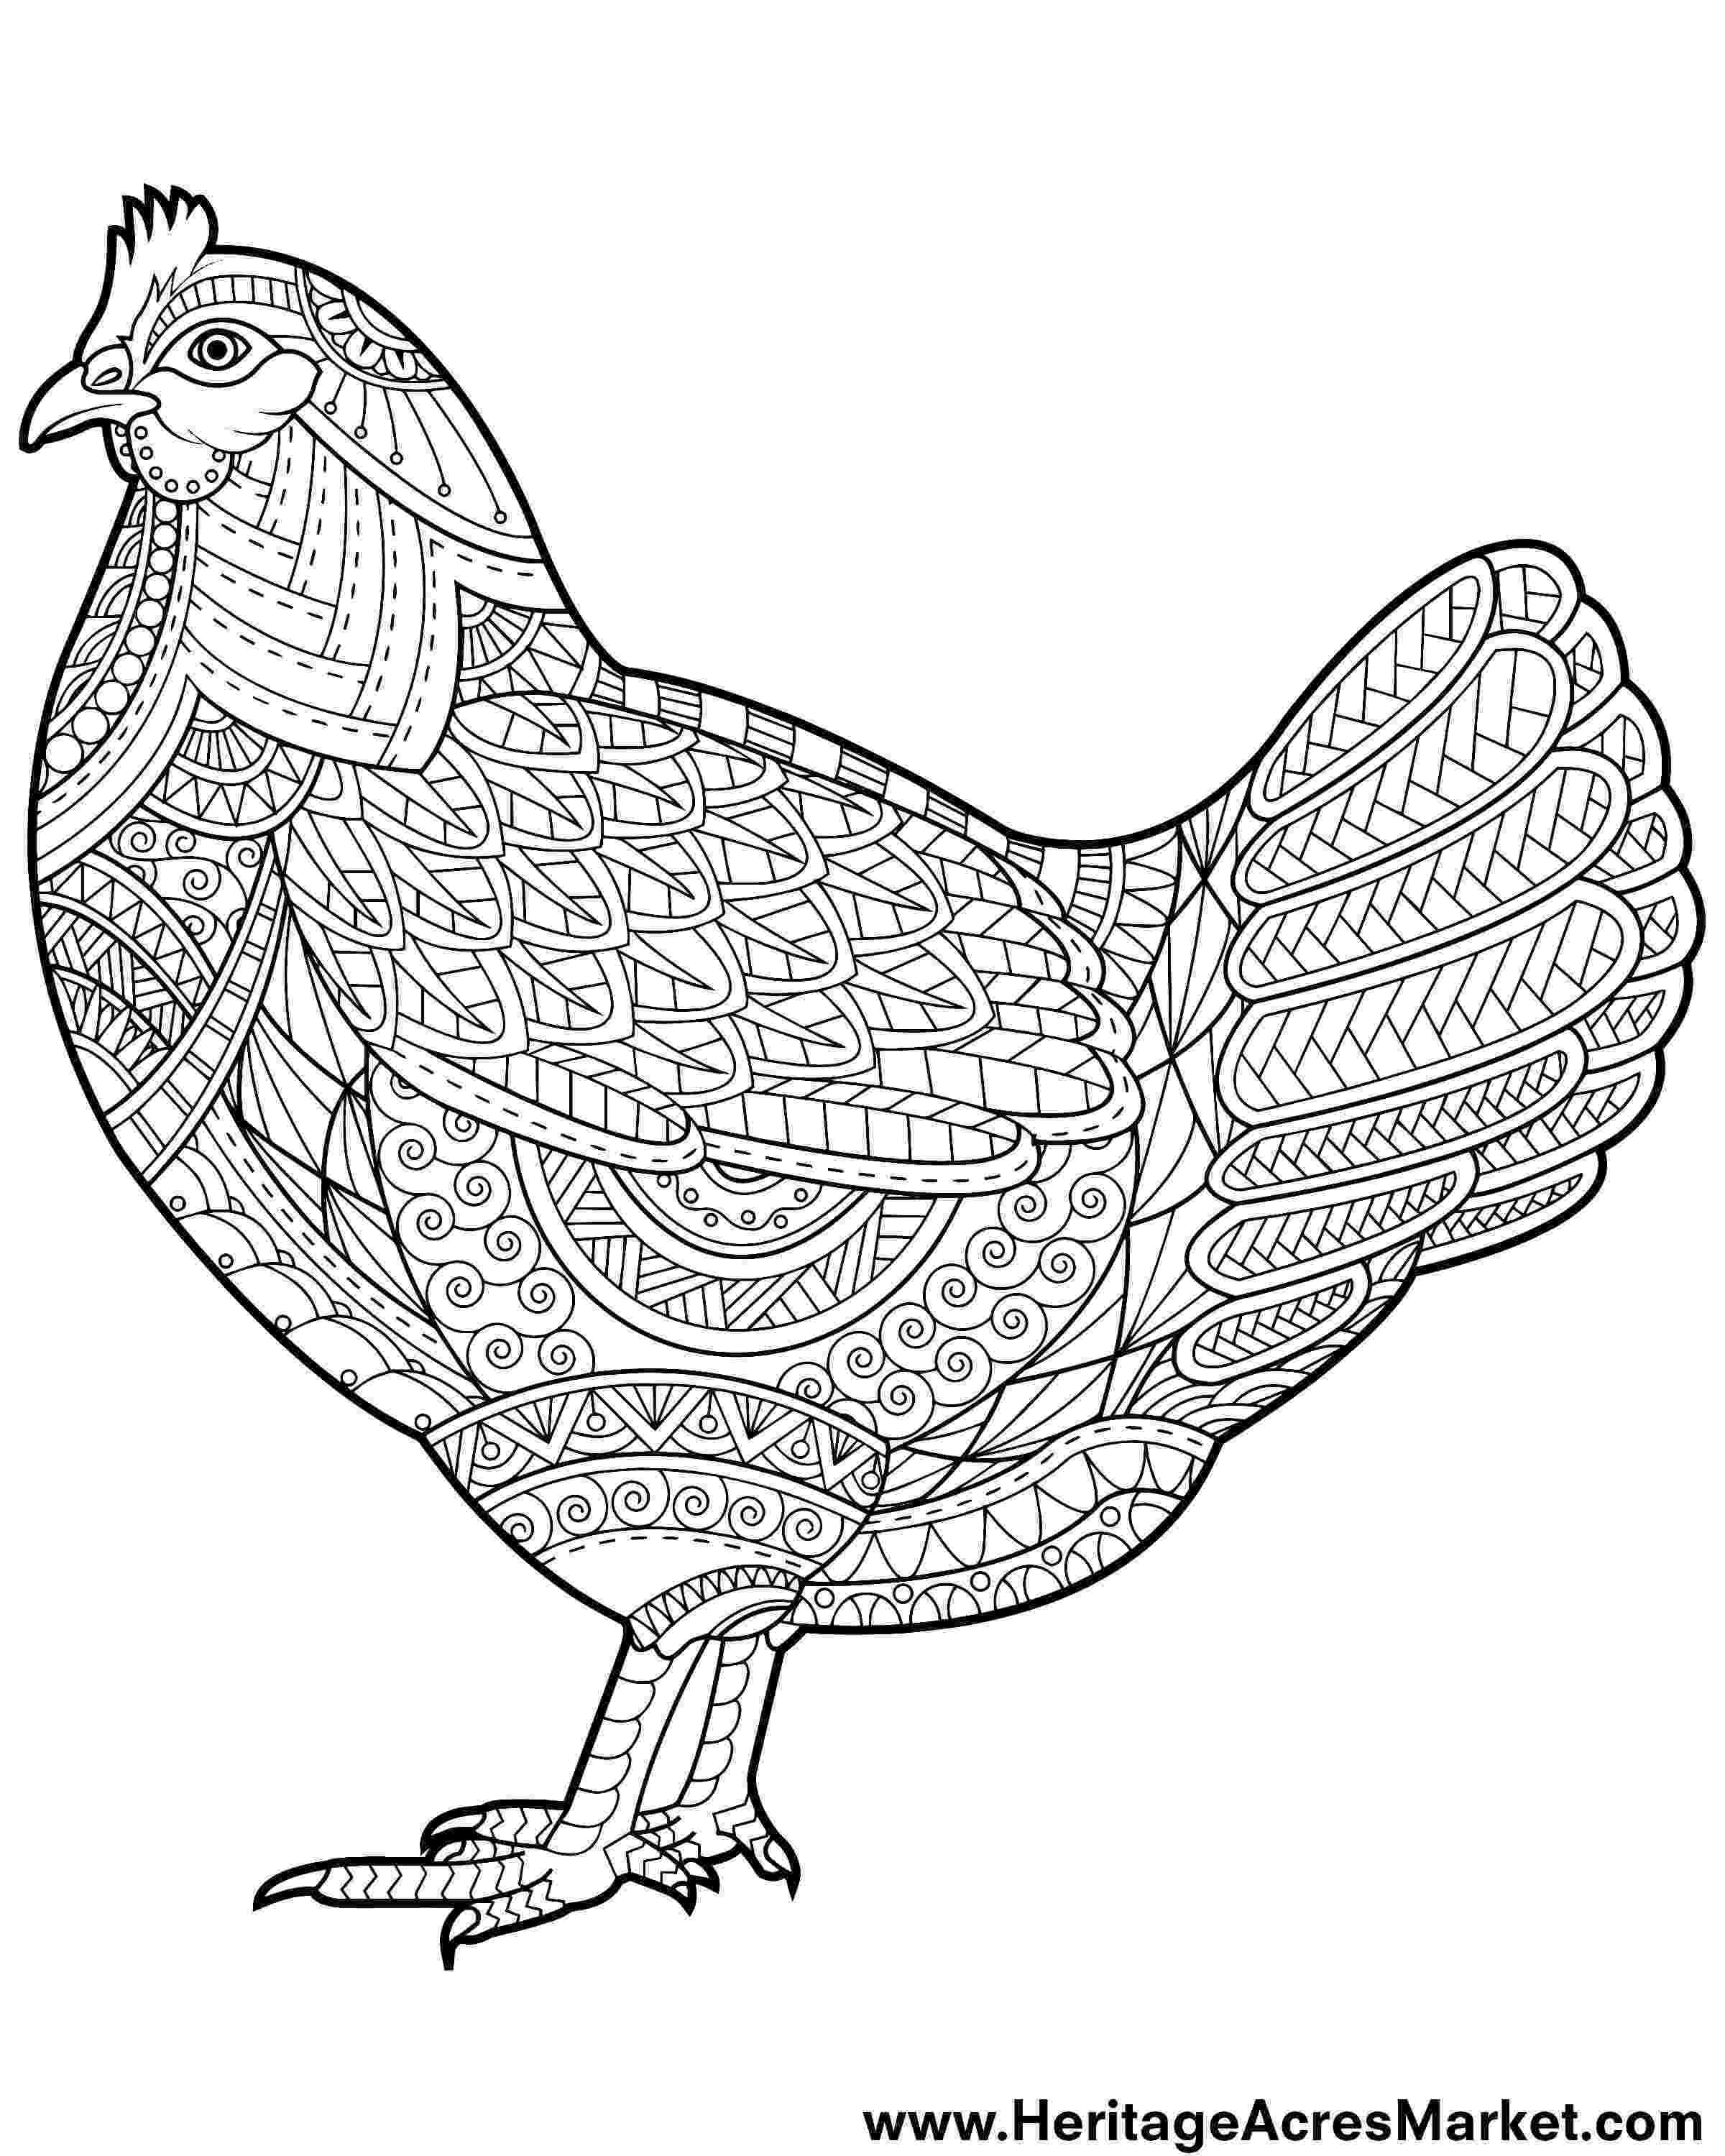 picture of chicken chicken stock vector illustration of farm chicken draw chicken of picture